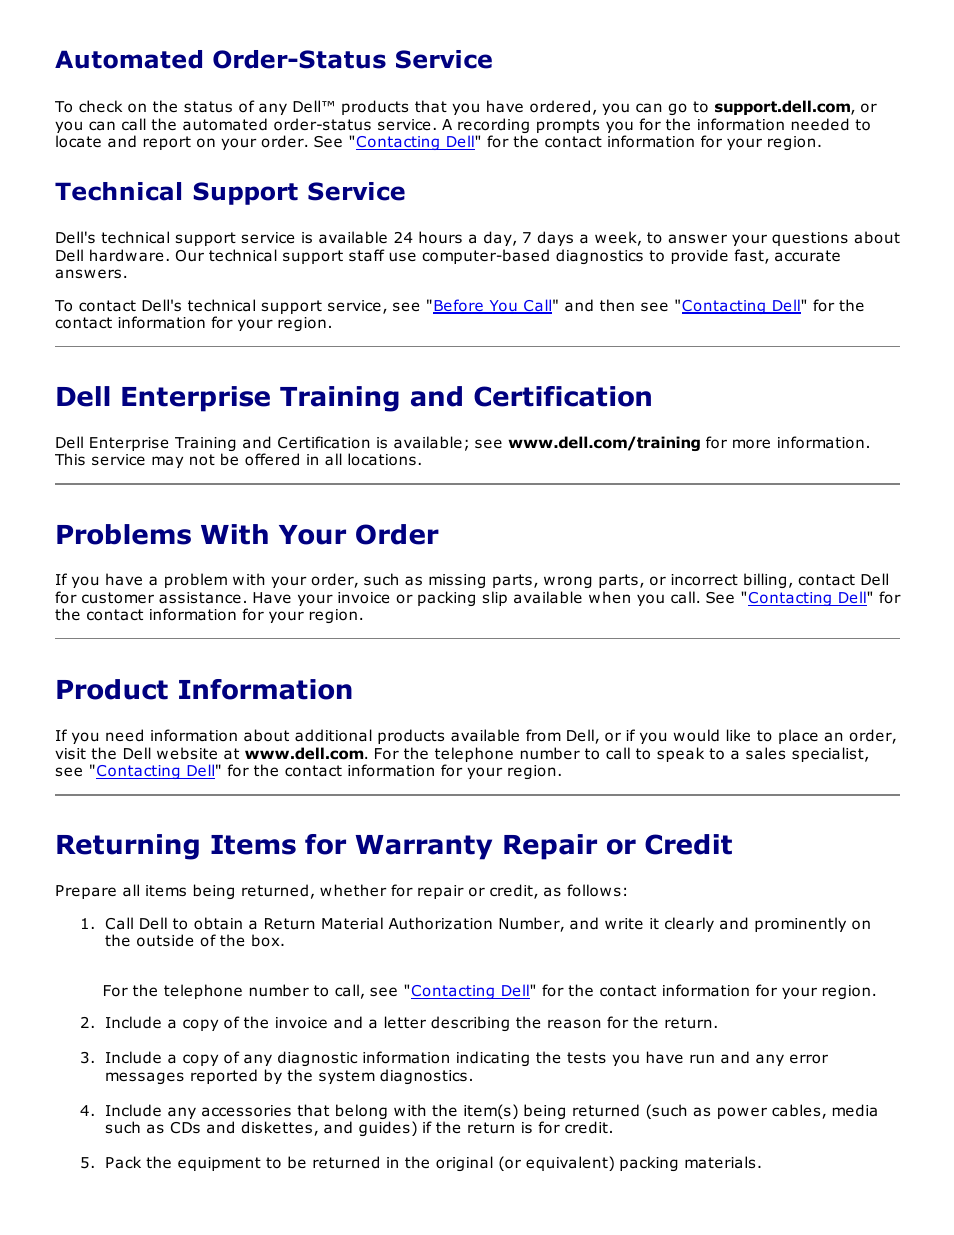 Dell enterprise training and certification, Problems with your order,  Product information | Returning items